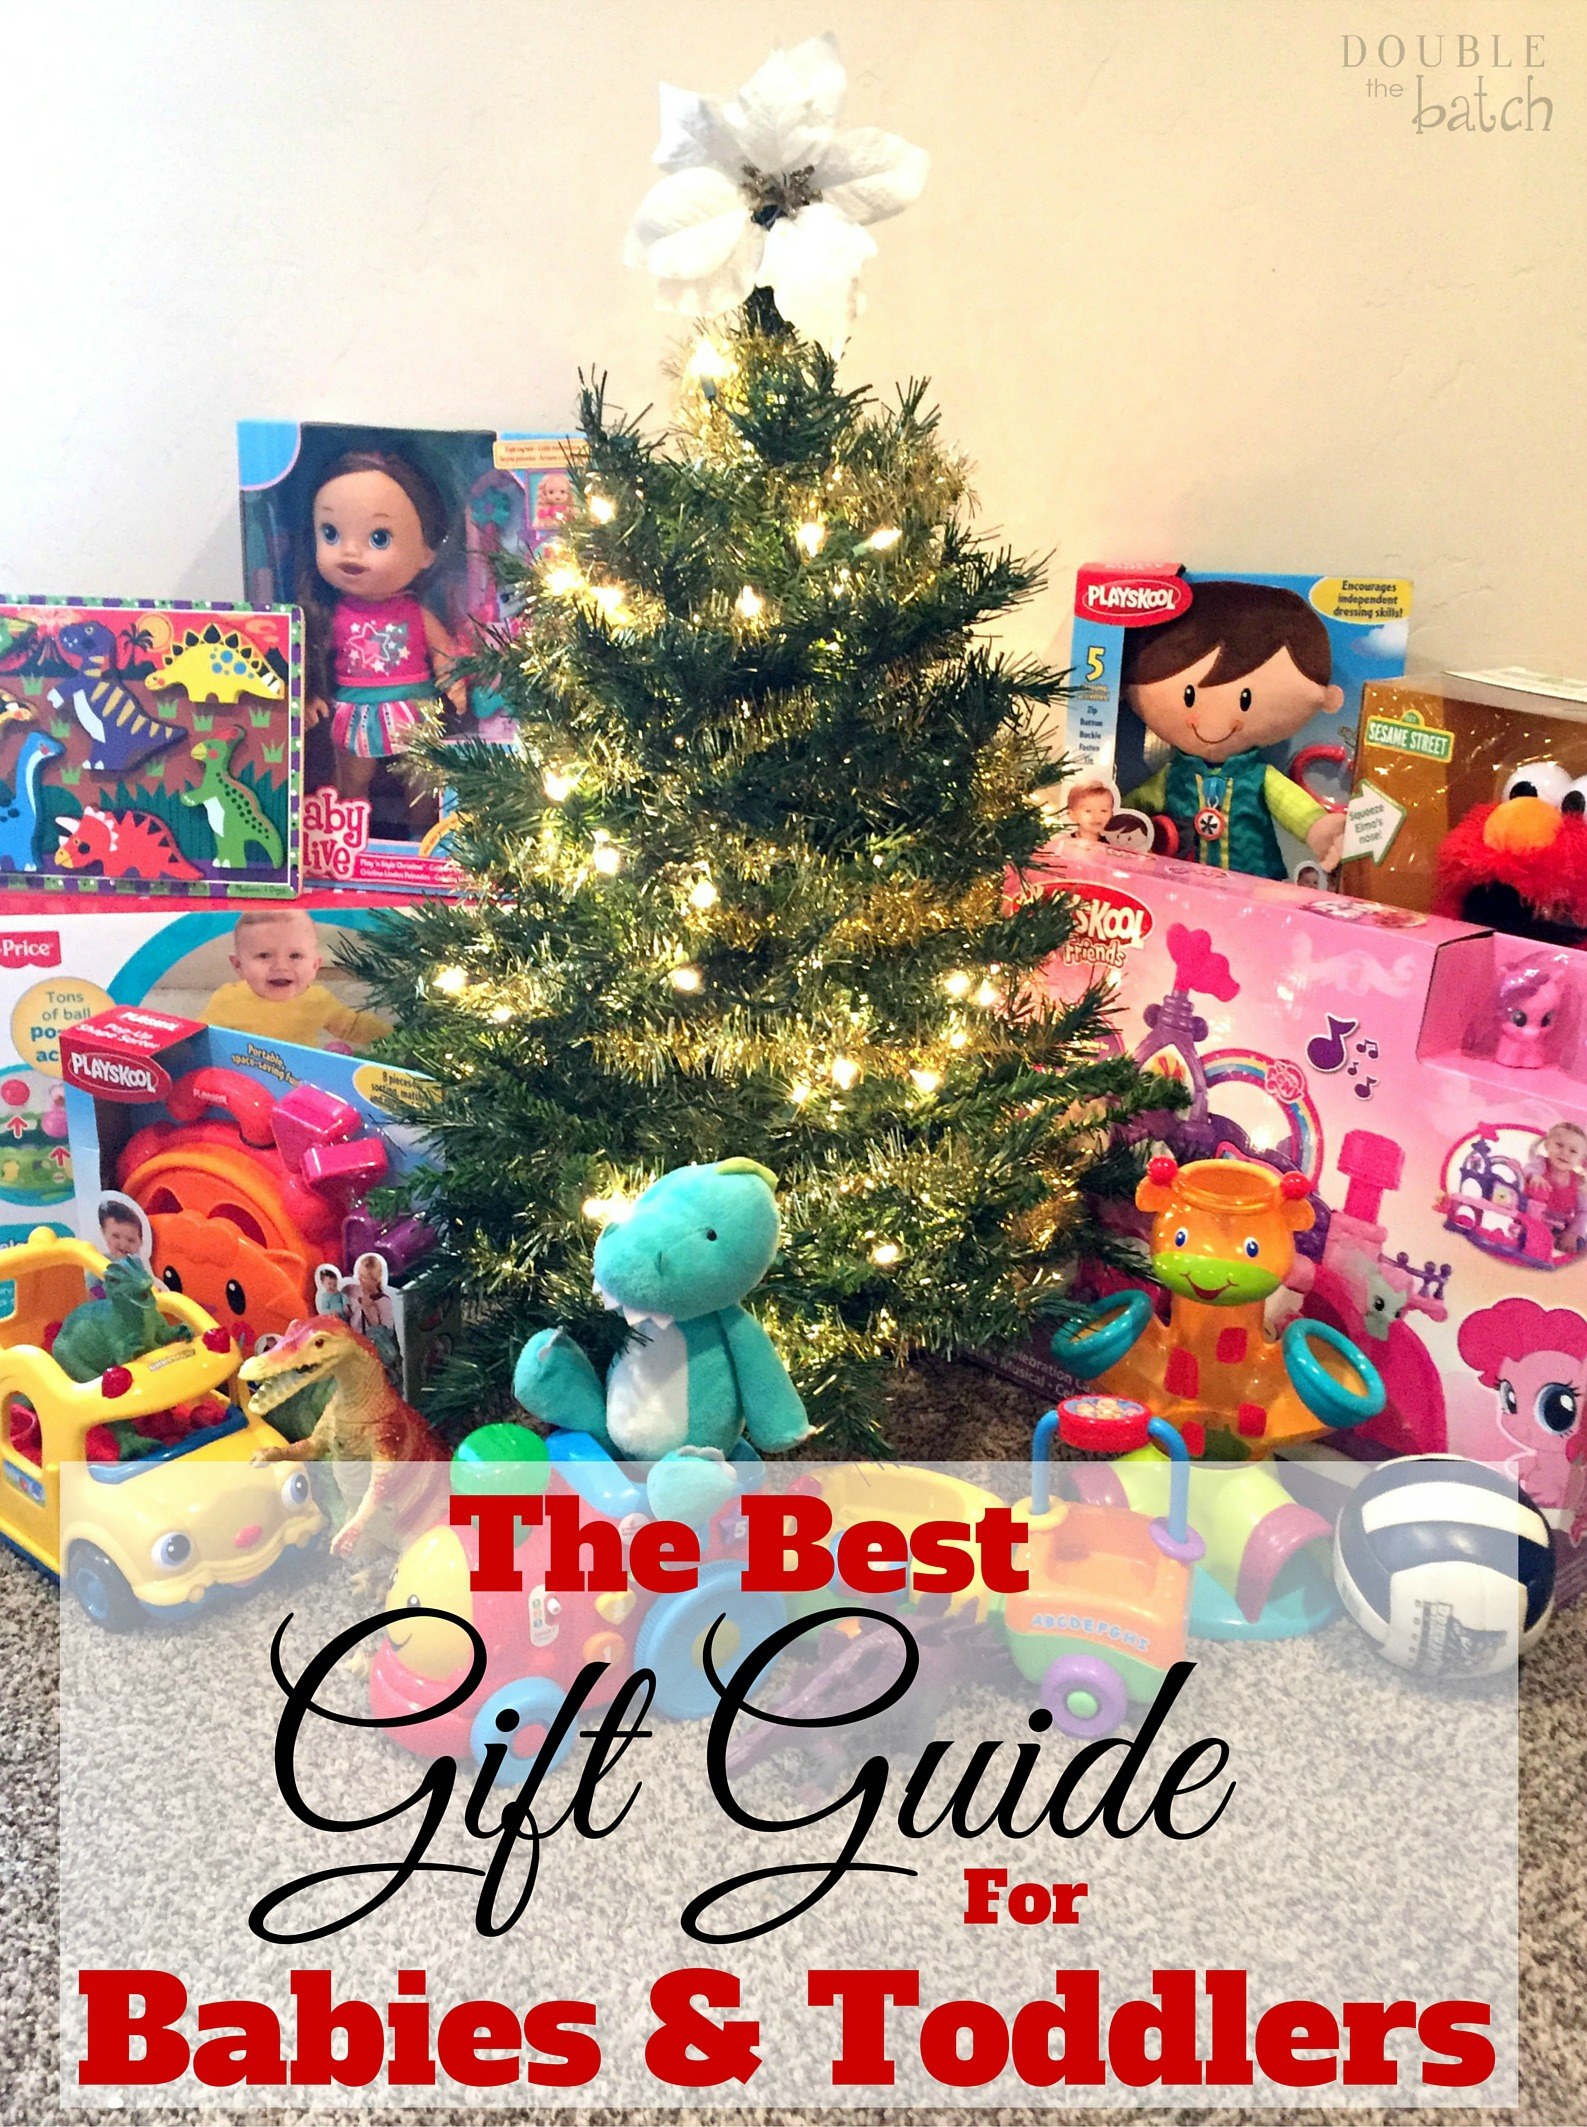 The Best gift guide for babies and toddlers